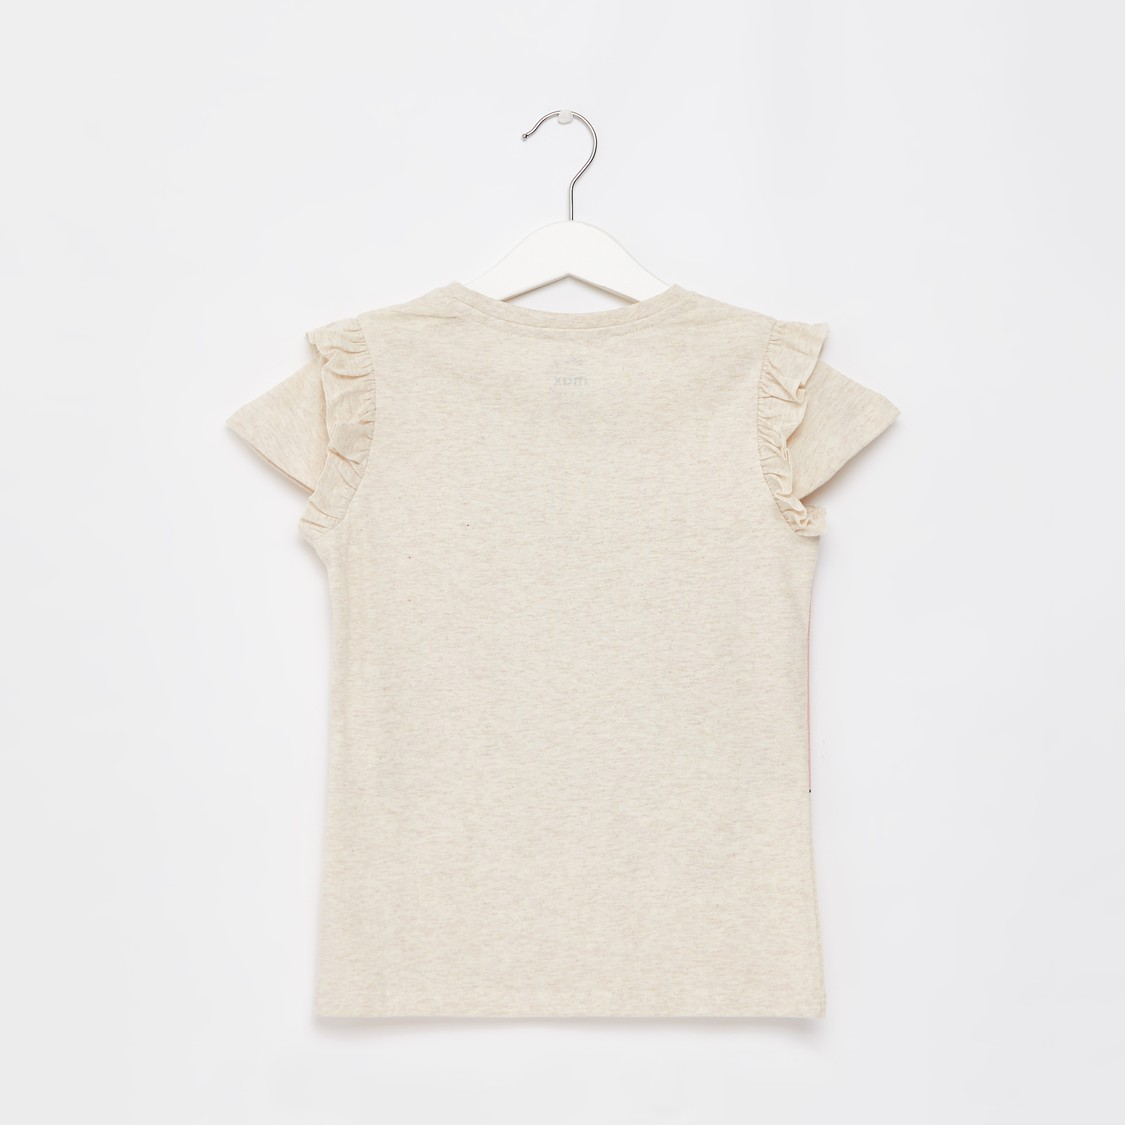 Dumbo Print T-shirt with Cap Sleeves and Ruffle Detail